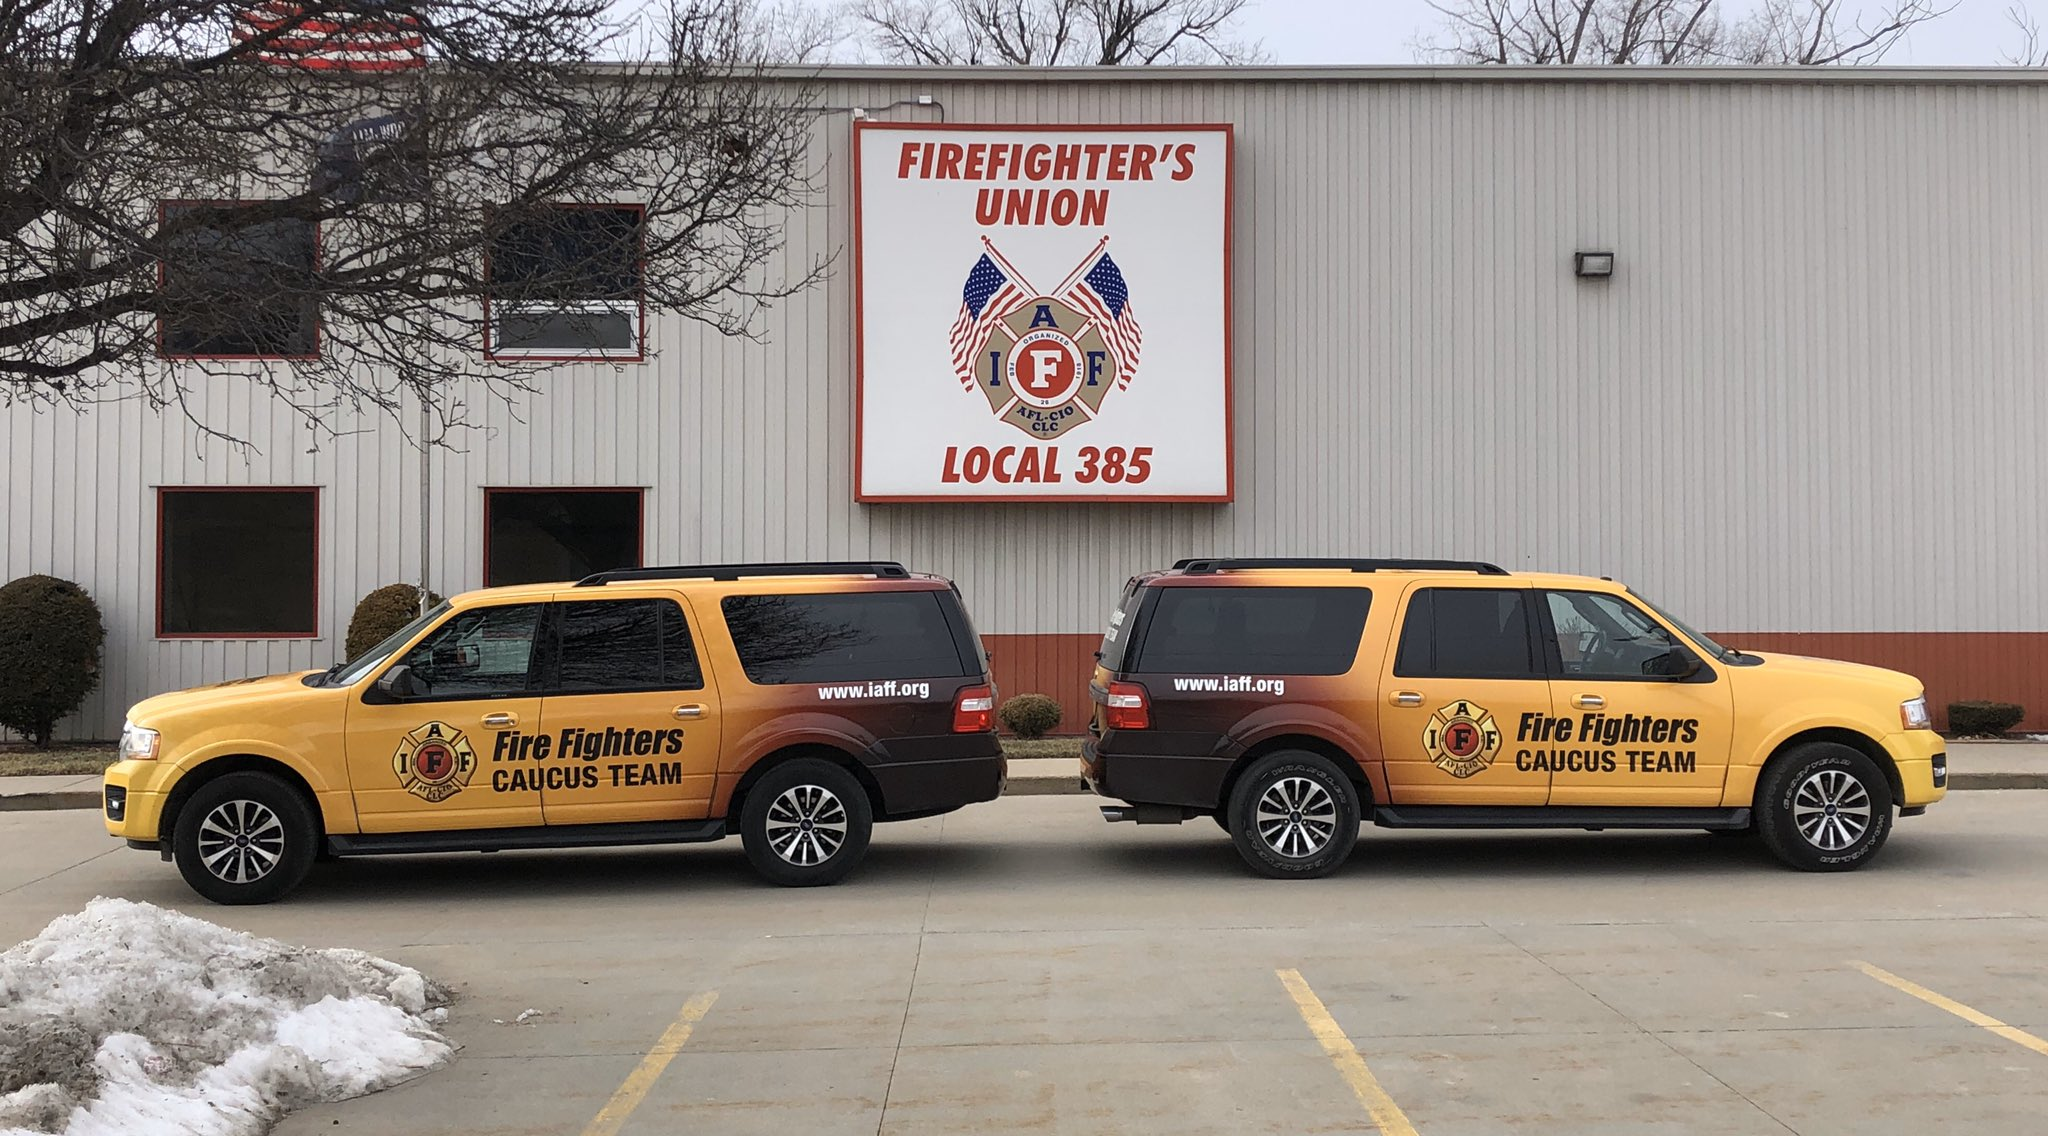 @IPFF2 stopped by @OmahaFire385 local office with #IAFF Caucus Team vehicles.... @tdtowey @DougWStern @IAFFNewsDesk https://t.co/tuwnDXFHEC